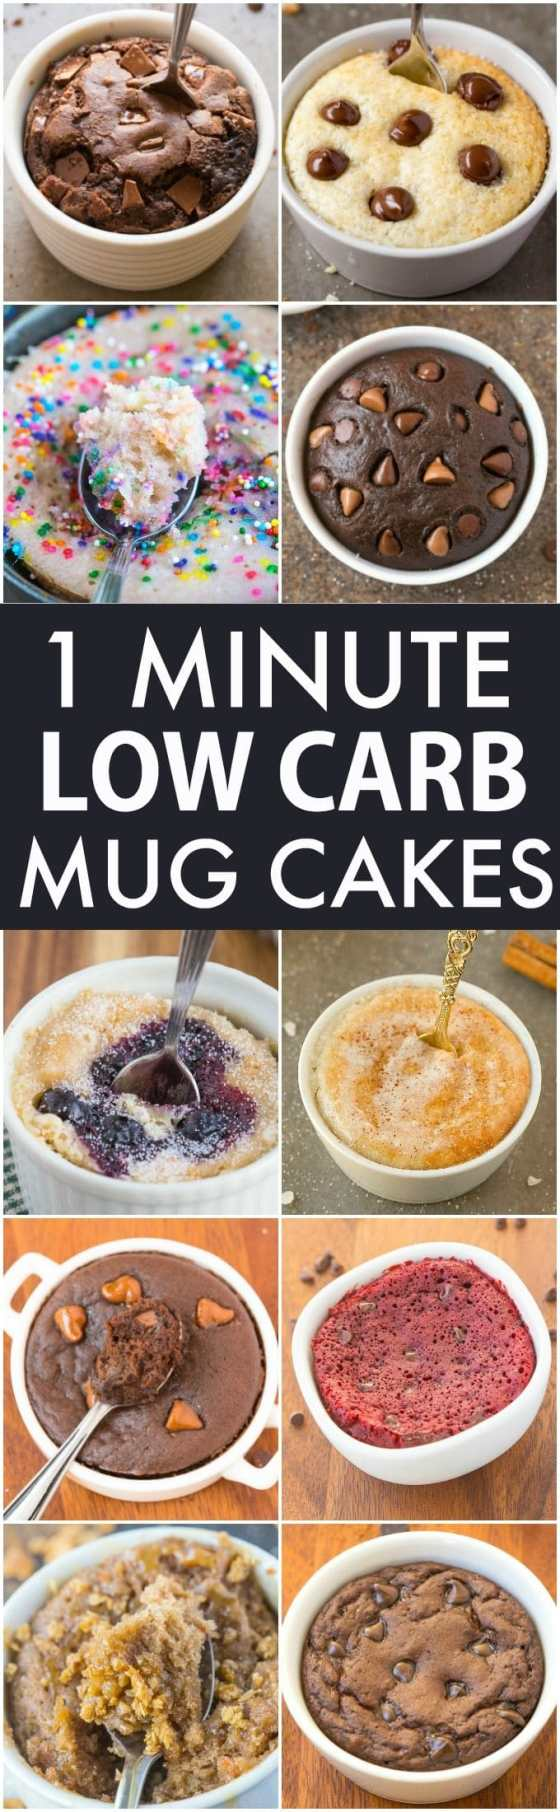 Low Carb Healthy 1 Minute Mug Cakes, Brownies and Muffins (V, GF, Paleo)- Delicious, single-serve desserts and snacks which take less than a minute! Low carb, sugar free and more with OVEN options too! {vegan, gluten free, paleo recipe}- #mugcake #healthy #singleserve | recipe on thebigmansworld.com